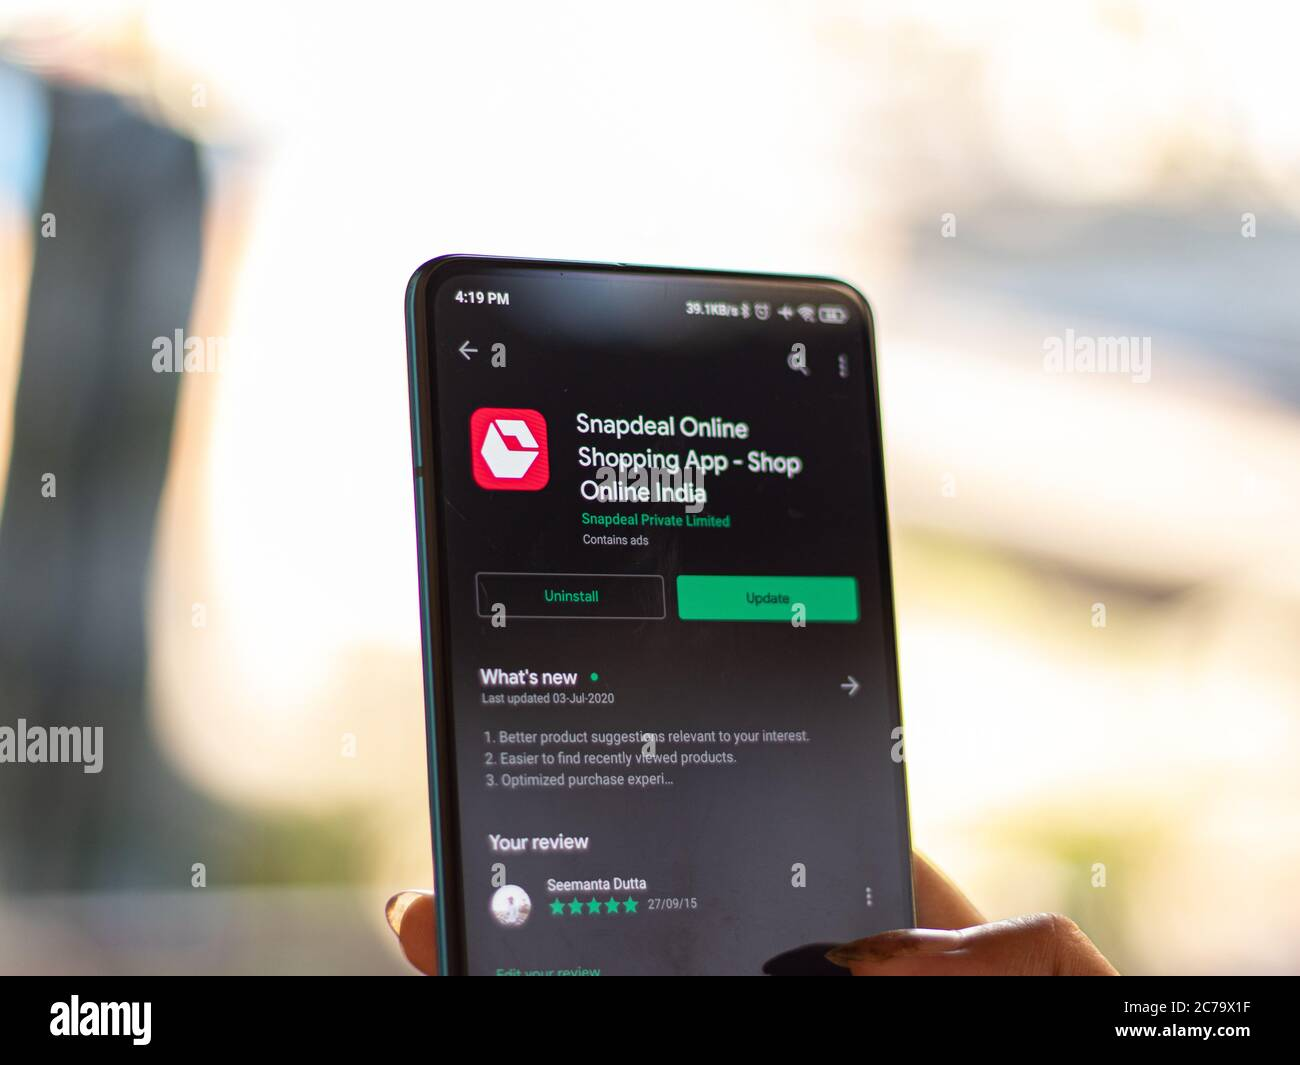 Assam India July 14 2020 Snapdeal A Indian Online Shopping App Stock Photo Alamy